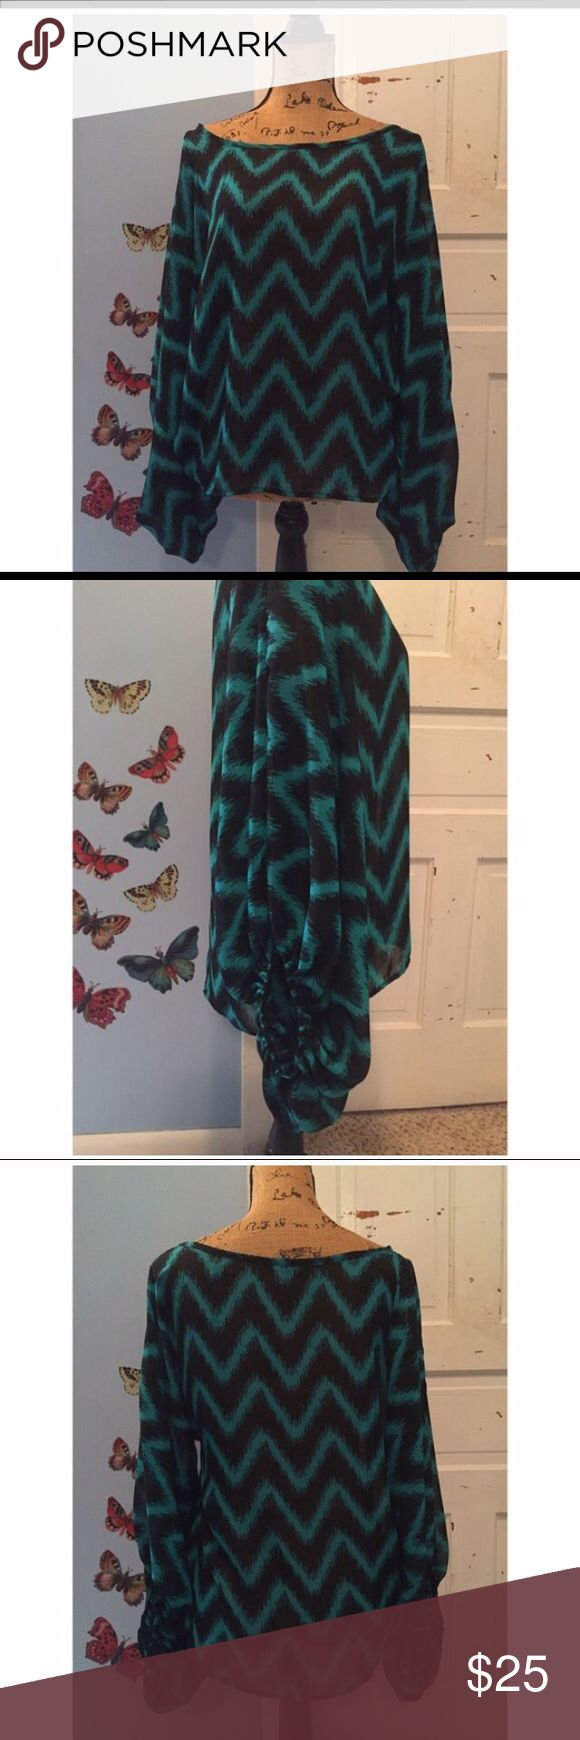 GREEN/BLUISH & BLACK CHEVRON BLOUSE 😍SIZE MEDIUM GREEN/BLUISH & BLACK CHEVRON BLOUSE 😍SIZE MEDIUM NWOT PERFECT CONDITION! ABSOLUTELY BEAUTIFUL BLOUSE ❤️️😍 Tops